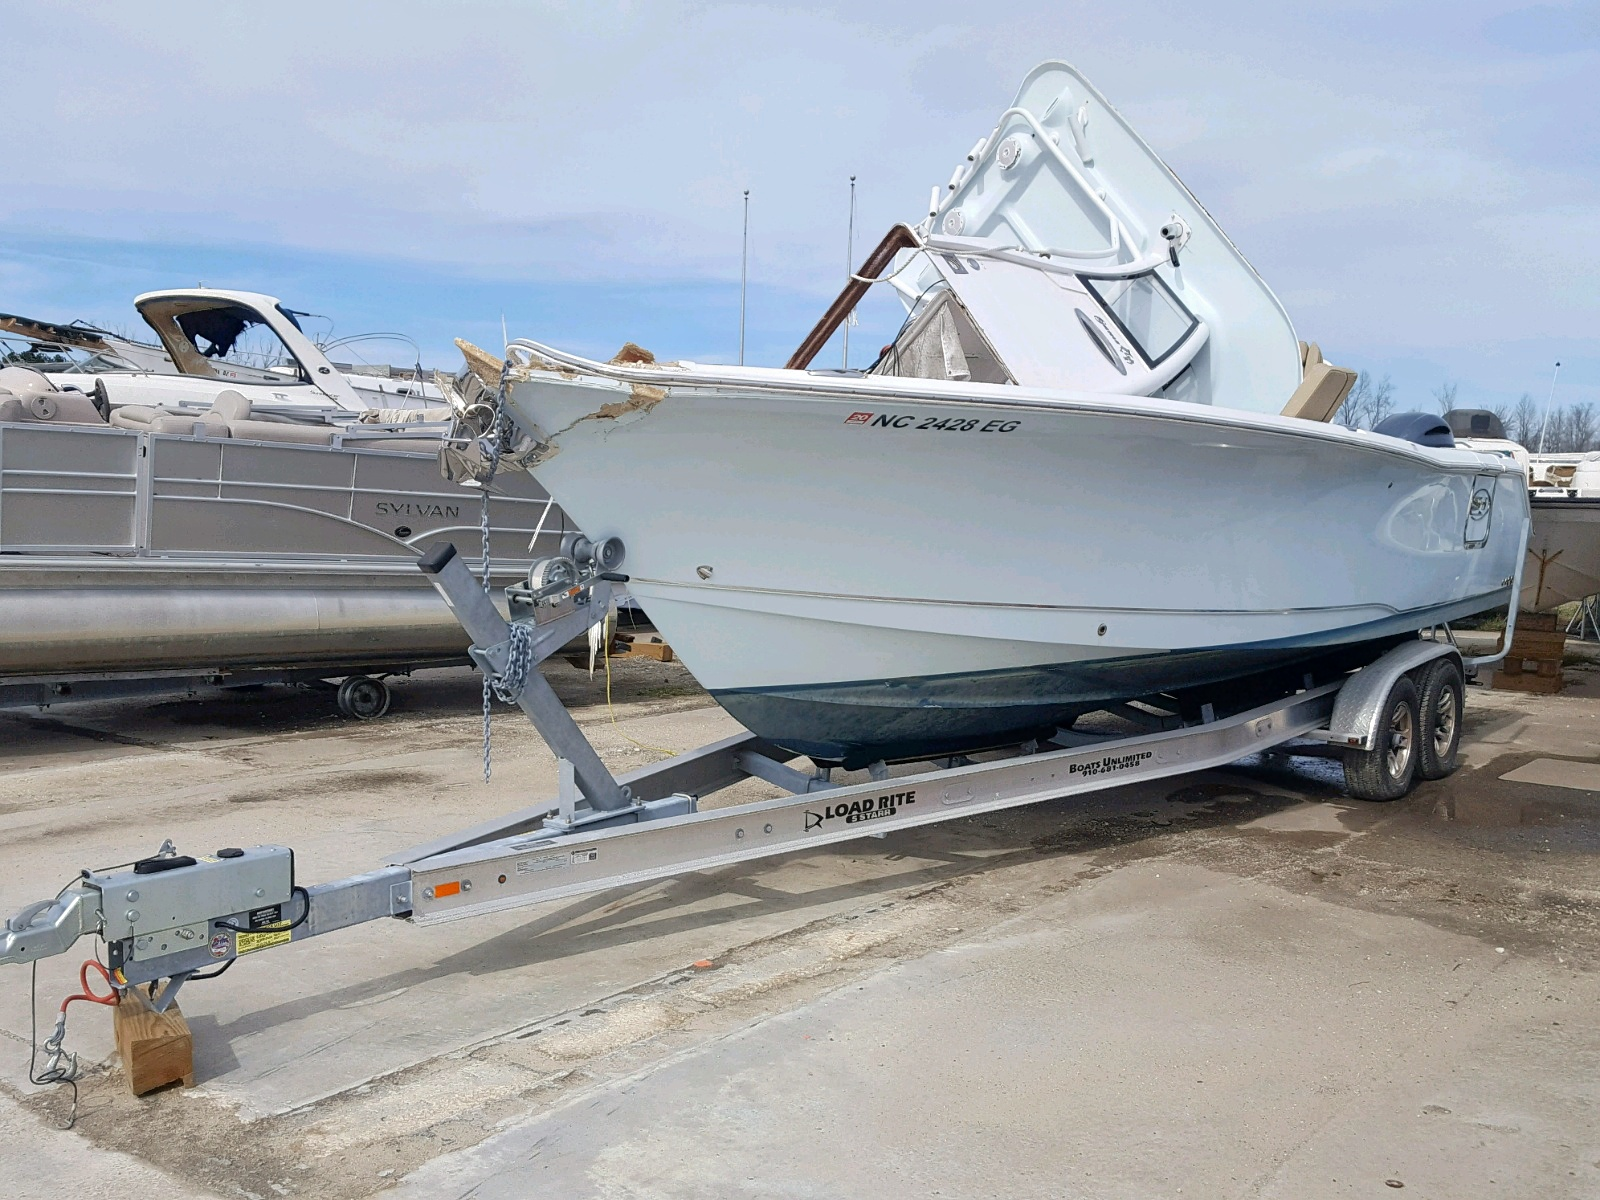 2018 Seac Boat in NC - Raleigh (SXSN0790H718) for Sale ...